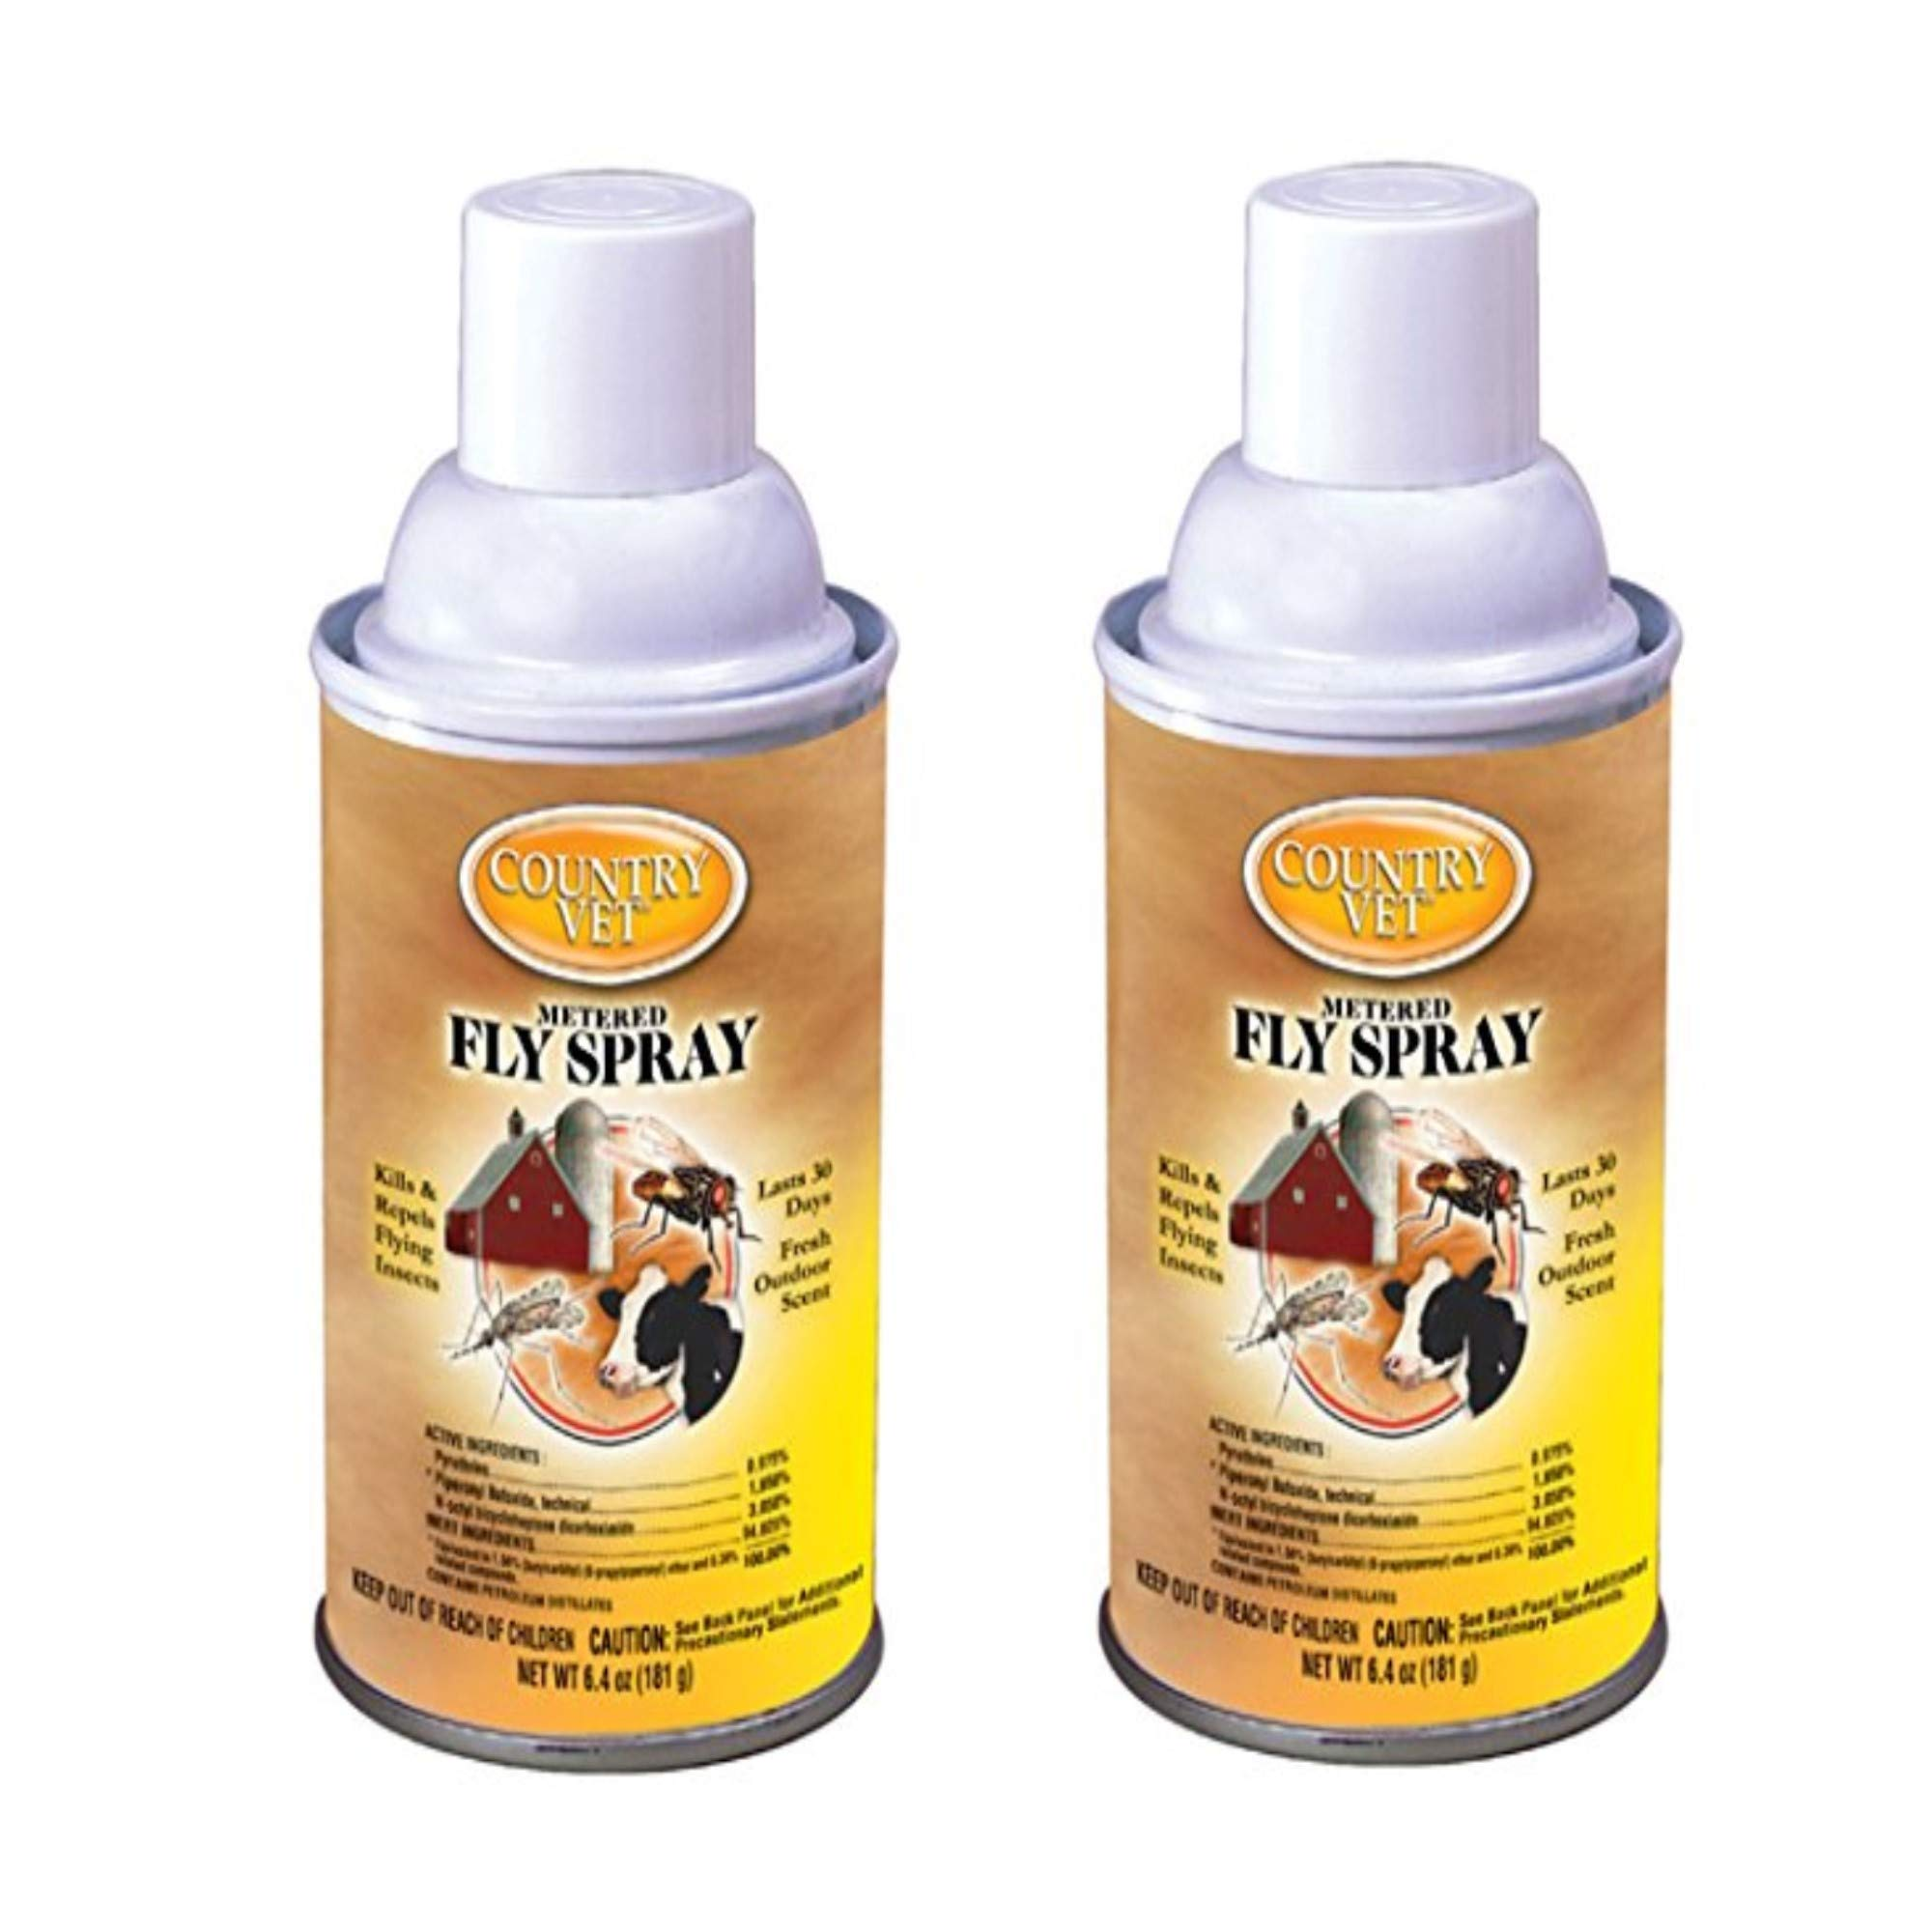 Zep Enforcer 34-2050CVA Country Vet Metered Fly Control Spray, Refill, 30 Day Supply, Brown/A - 2 Pack